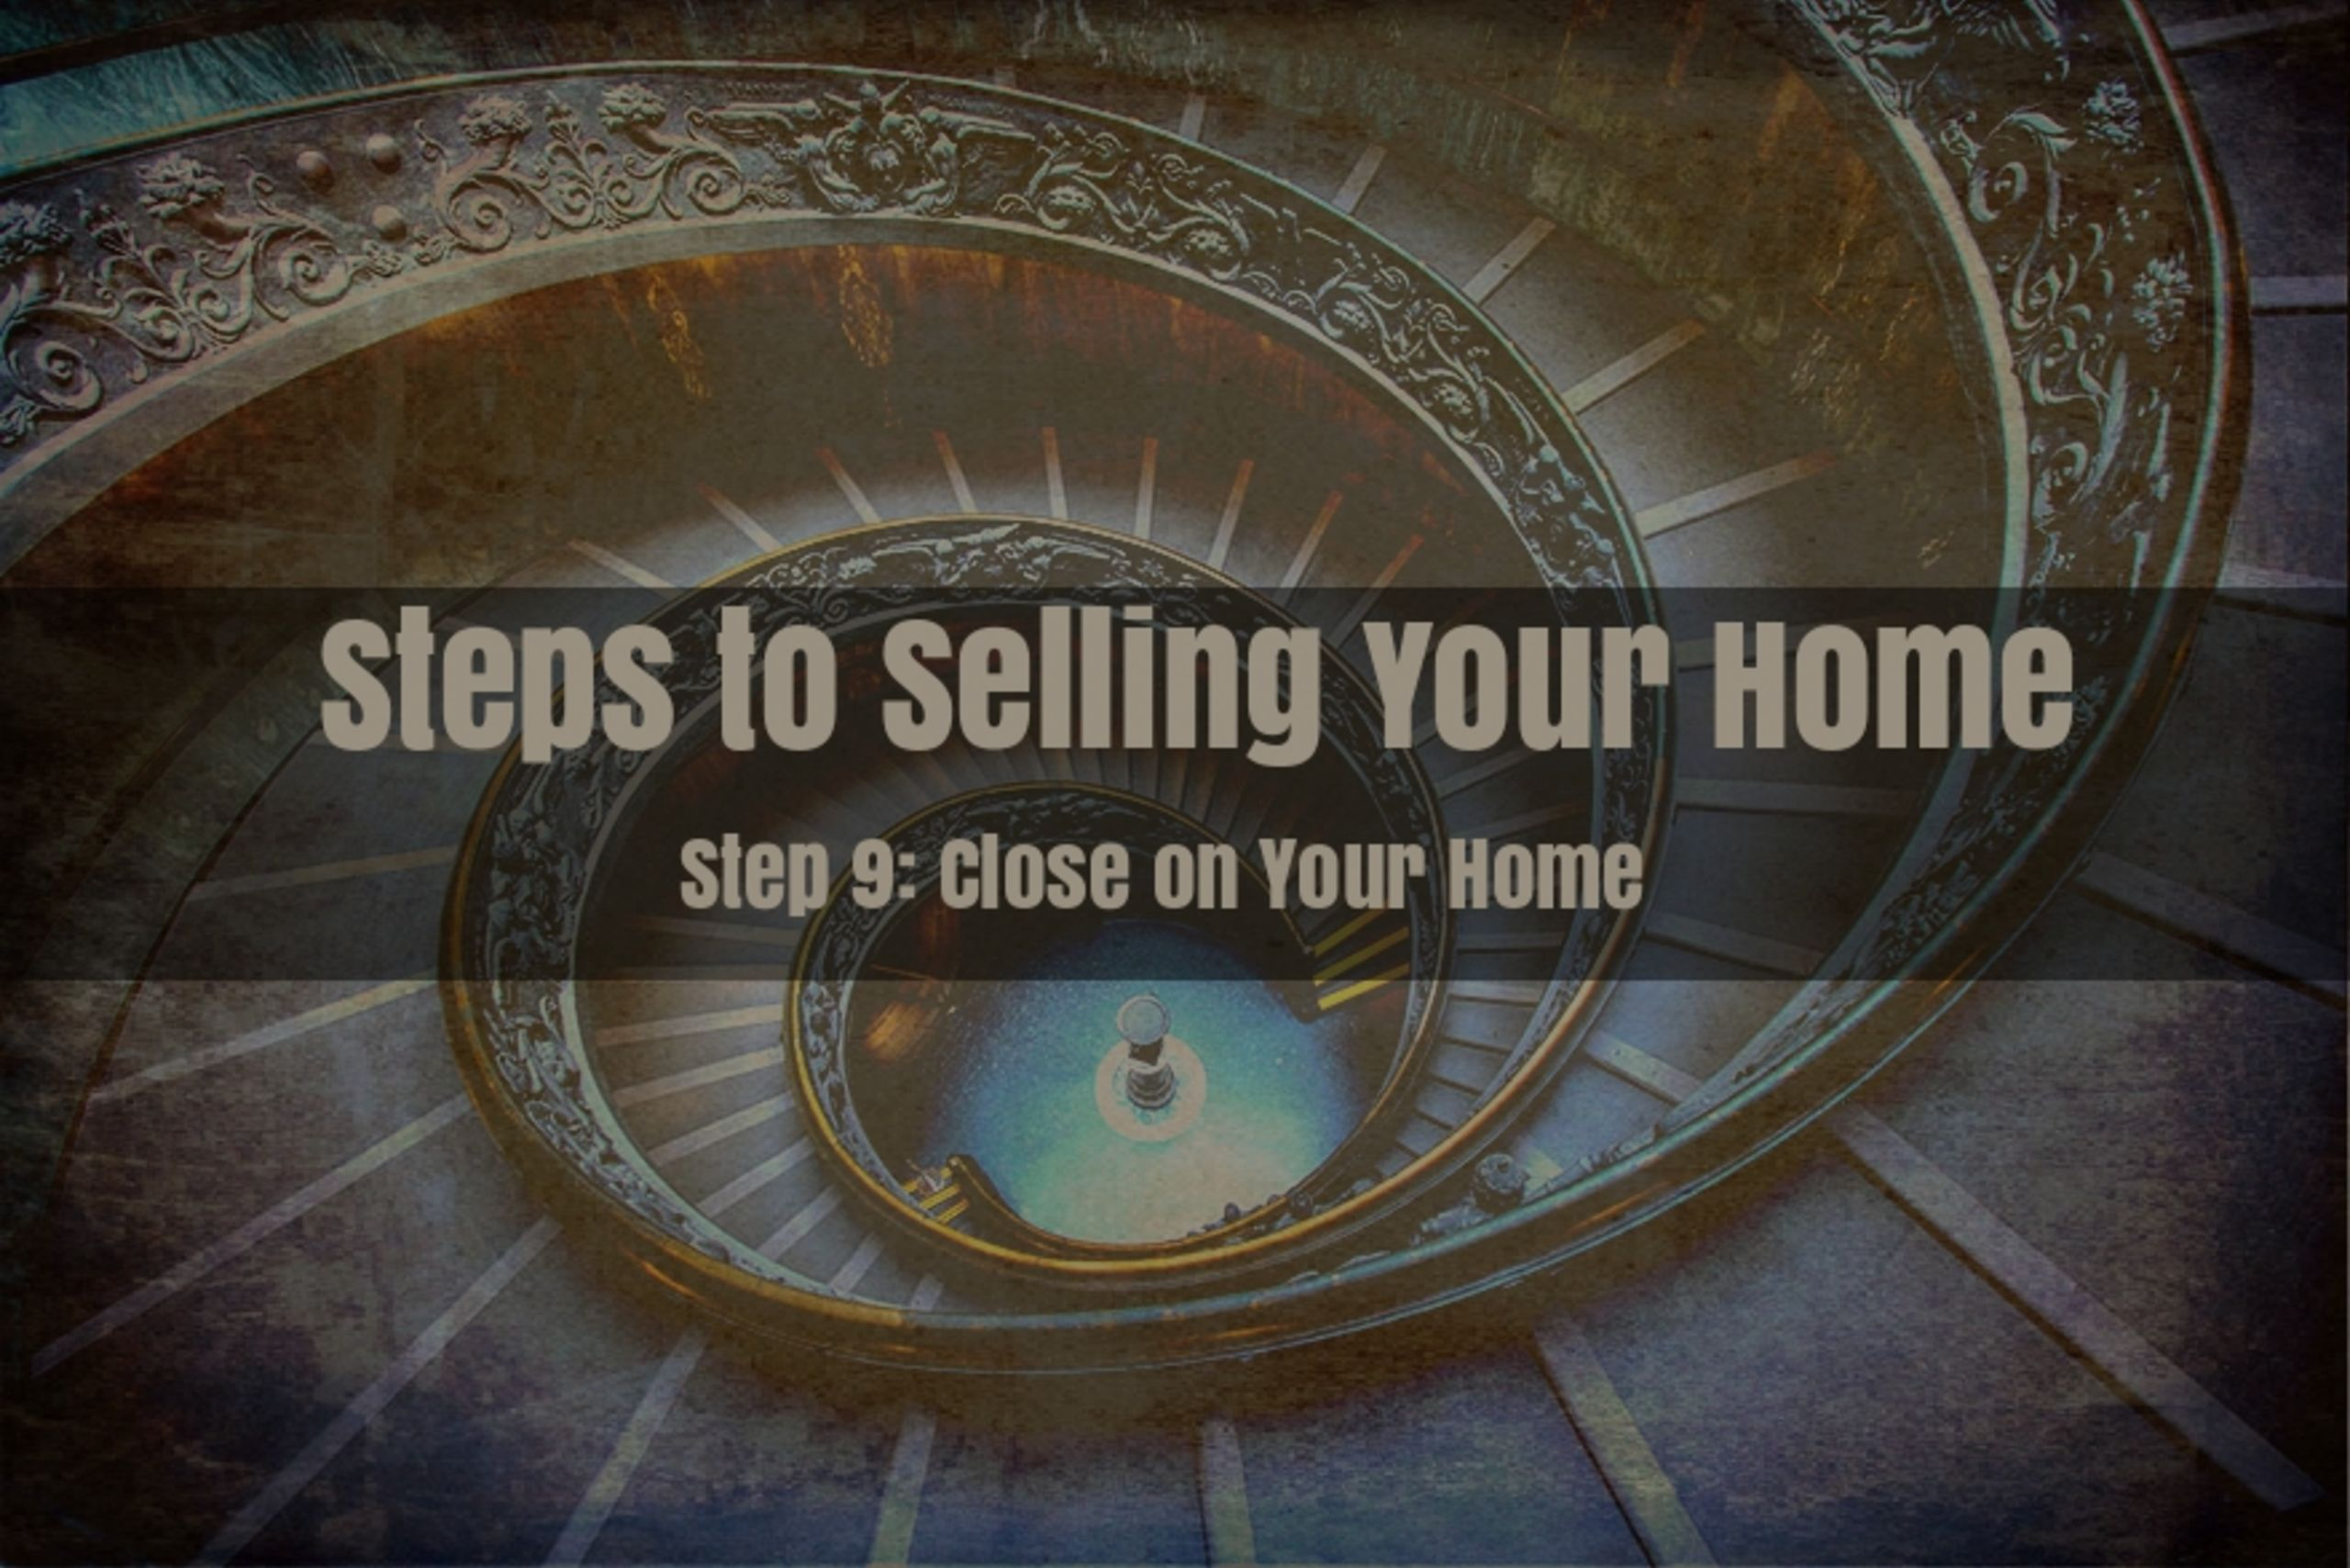 Step 9 – Close on Your Home